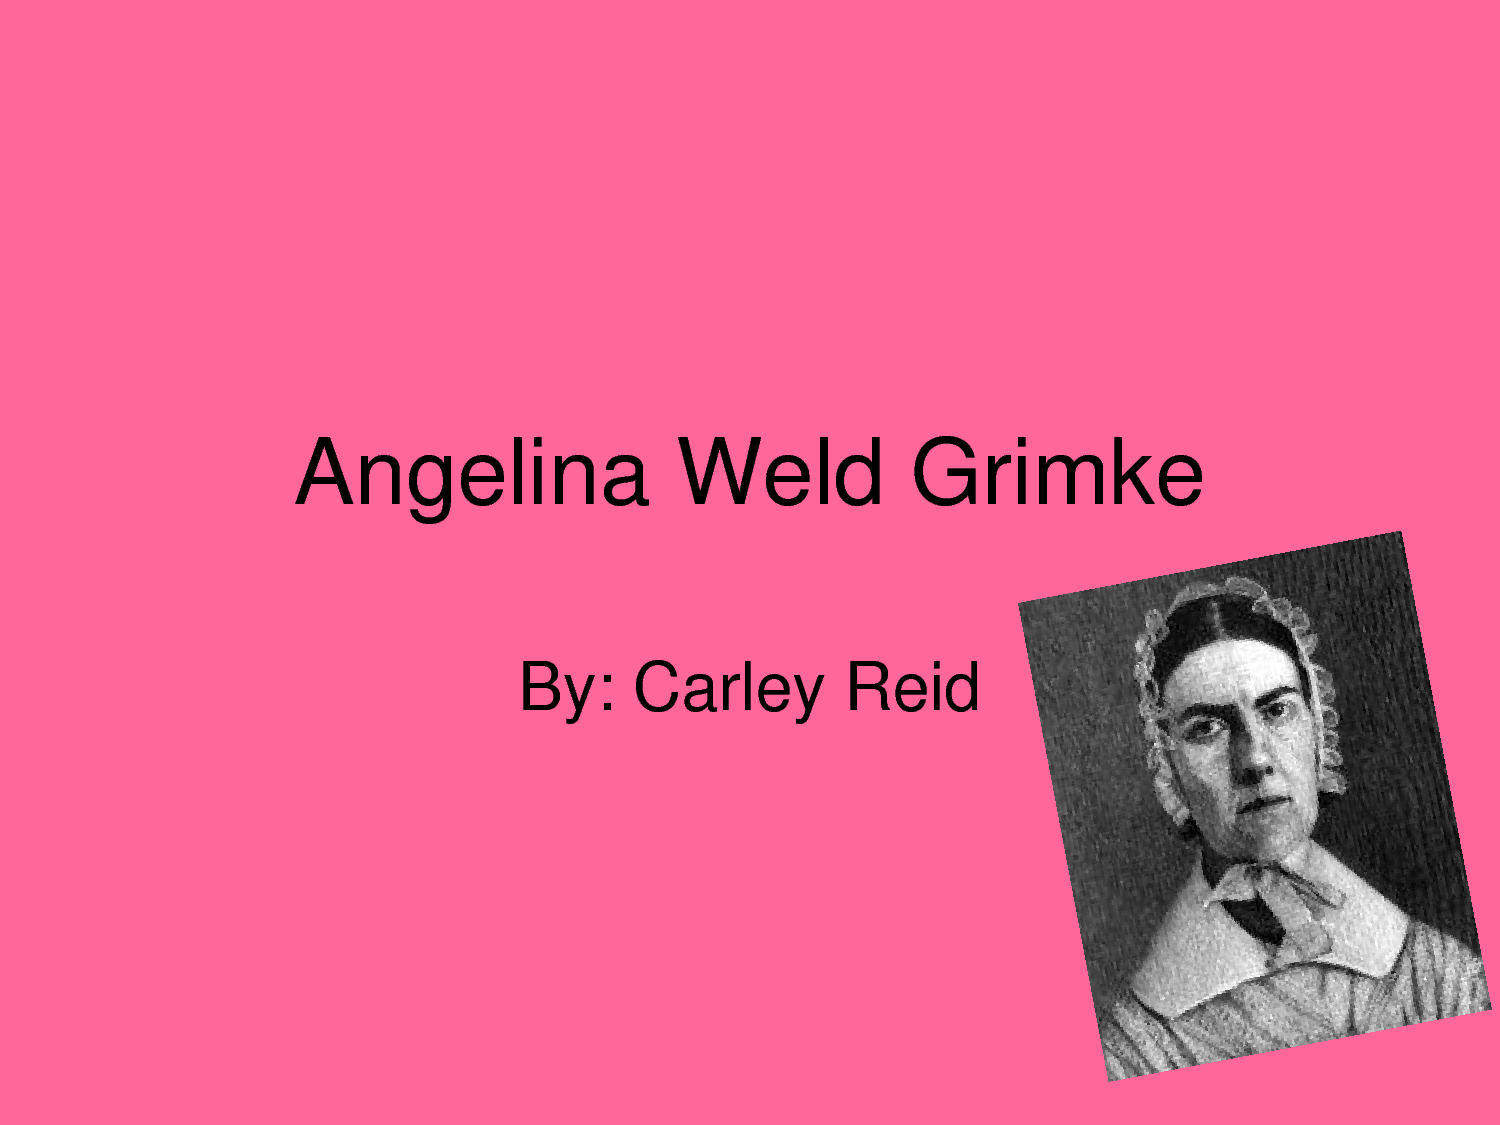 the life and contributions of sarah and angelina grimke Angelina weld grimke was born in boston, massachusetts on february 27, 1880 to sarah stanley grimke and archibald grimke born into a biracial family well known.